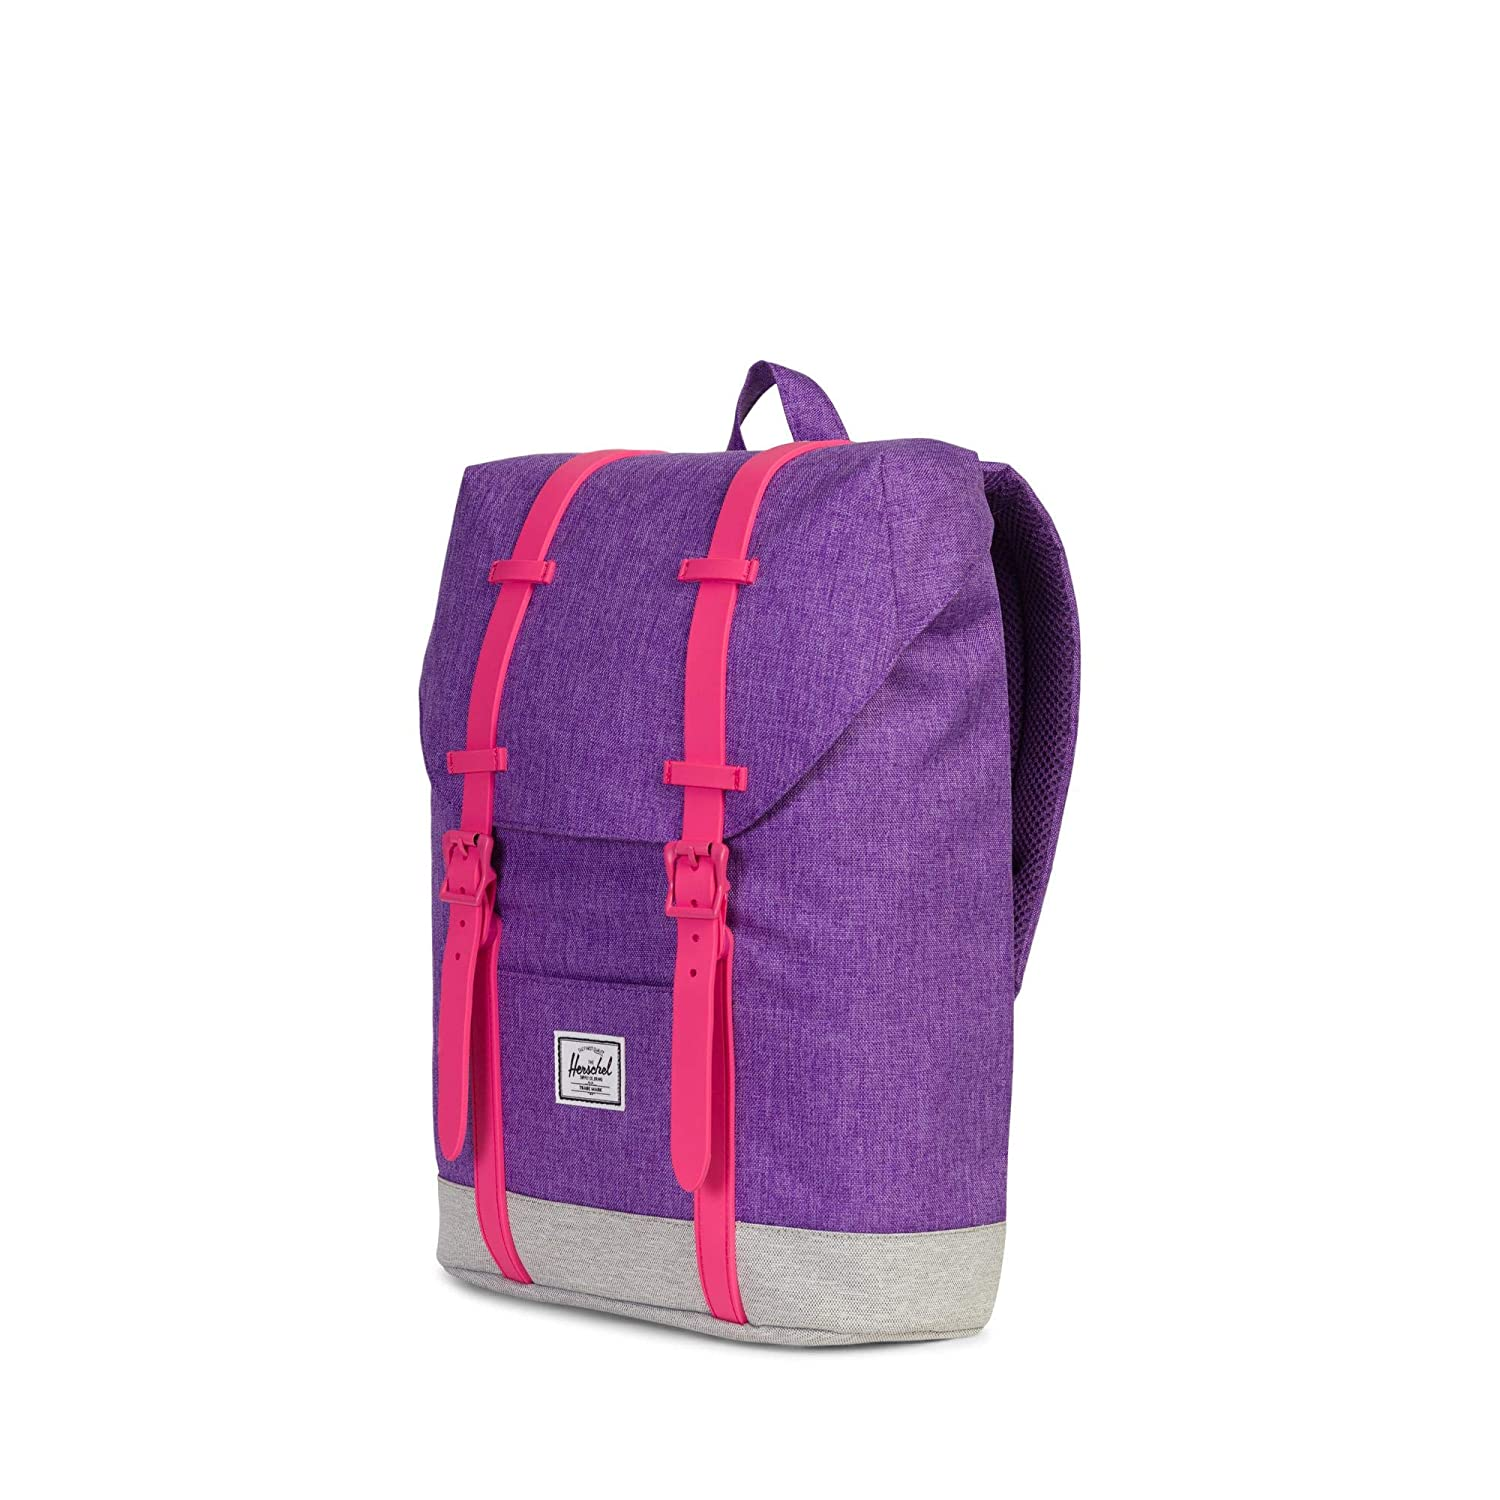 Amazon.com | Herschel Kids Retreat Youth Backpack, Deep Lavendar Light Grey Crosshatch/Fandango Pink One Size | Kids Backpacks